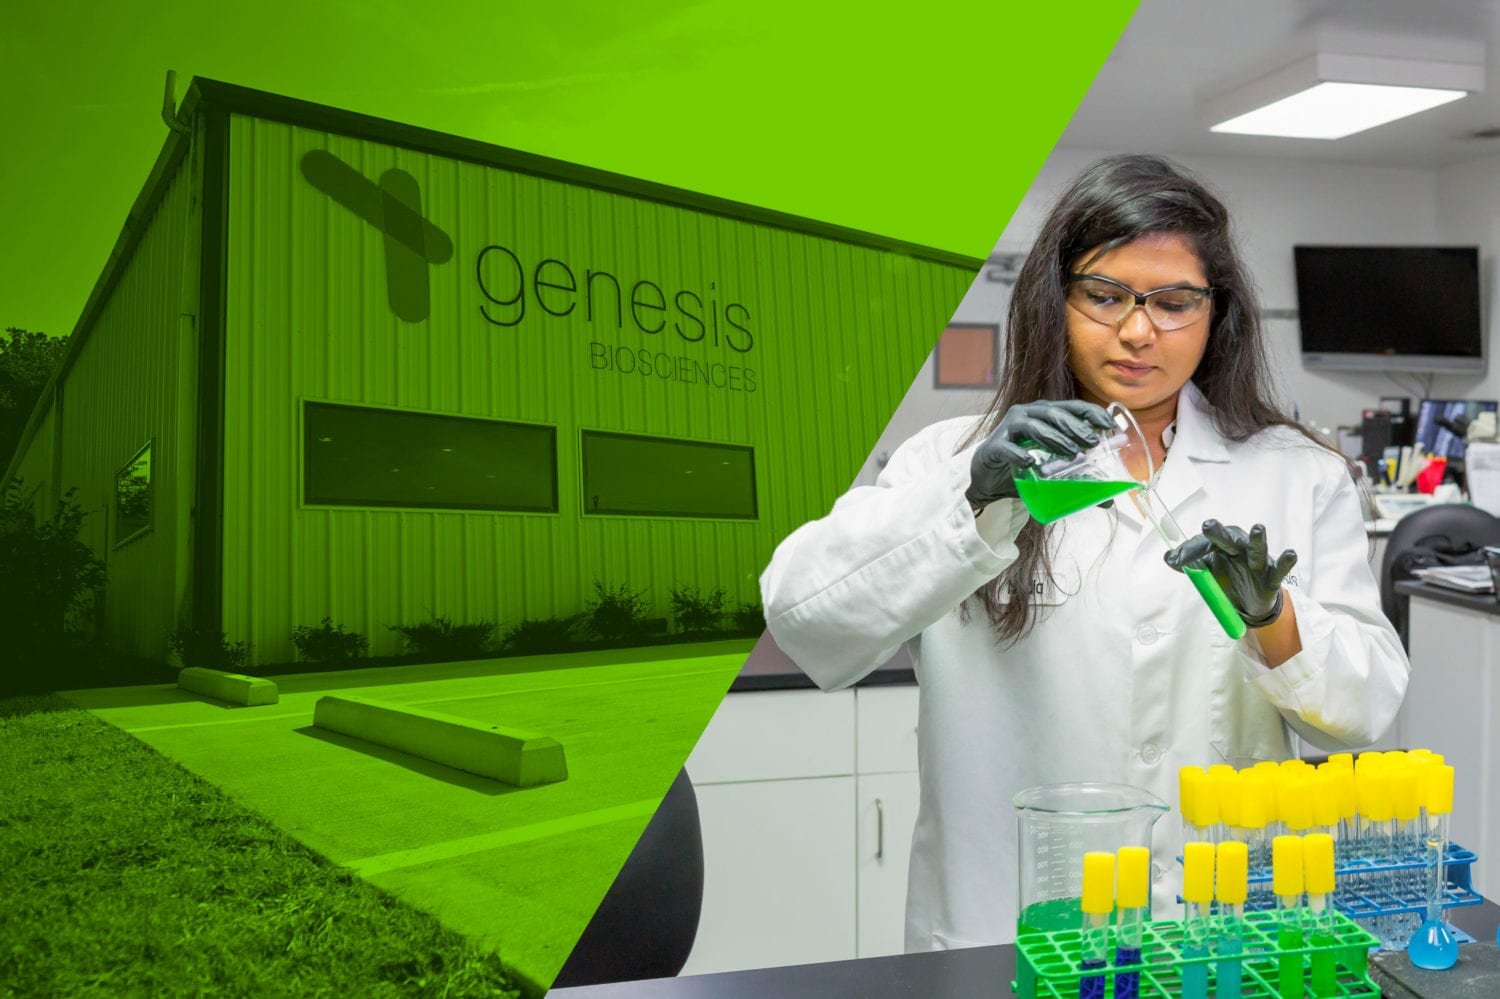 Meet the Genesis Biosciences team - industry-leading experts across scientific fields